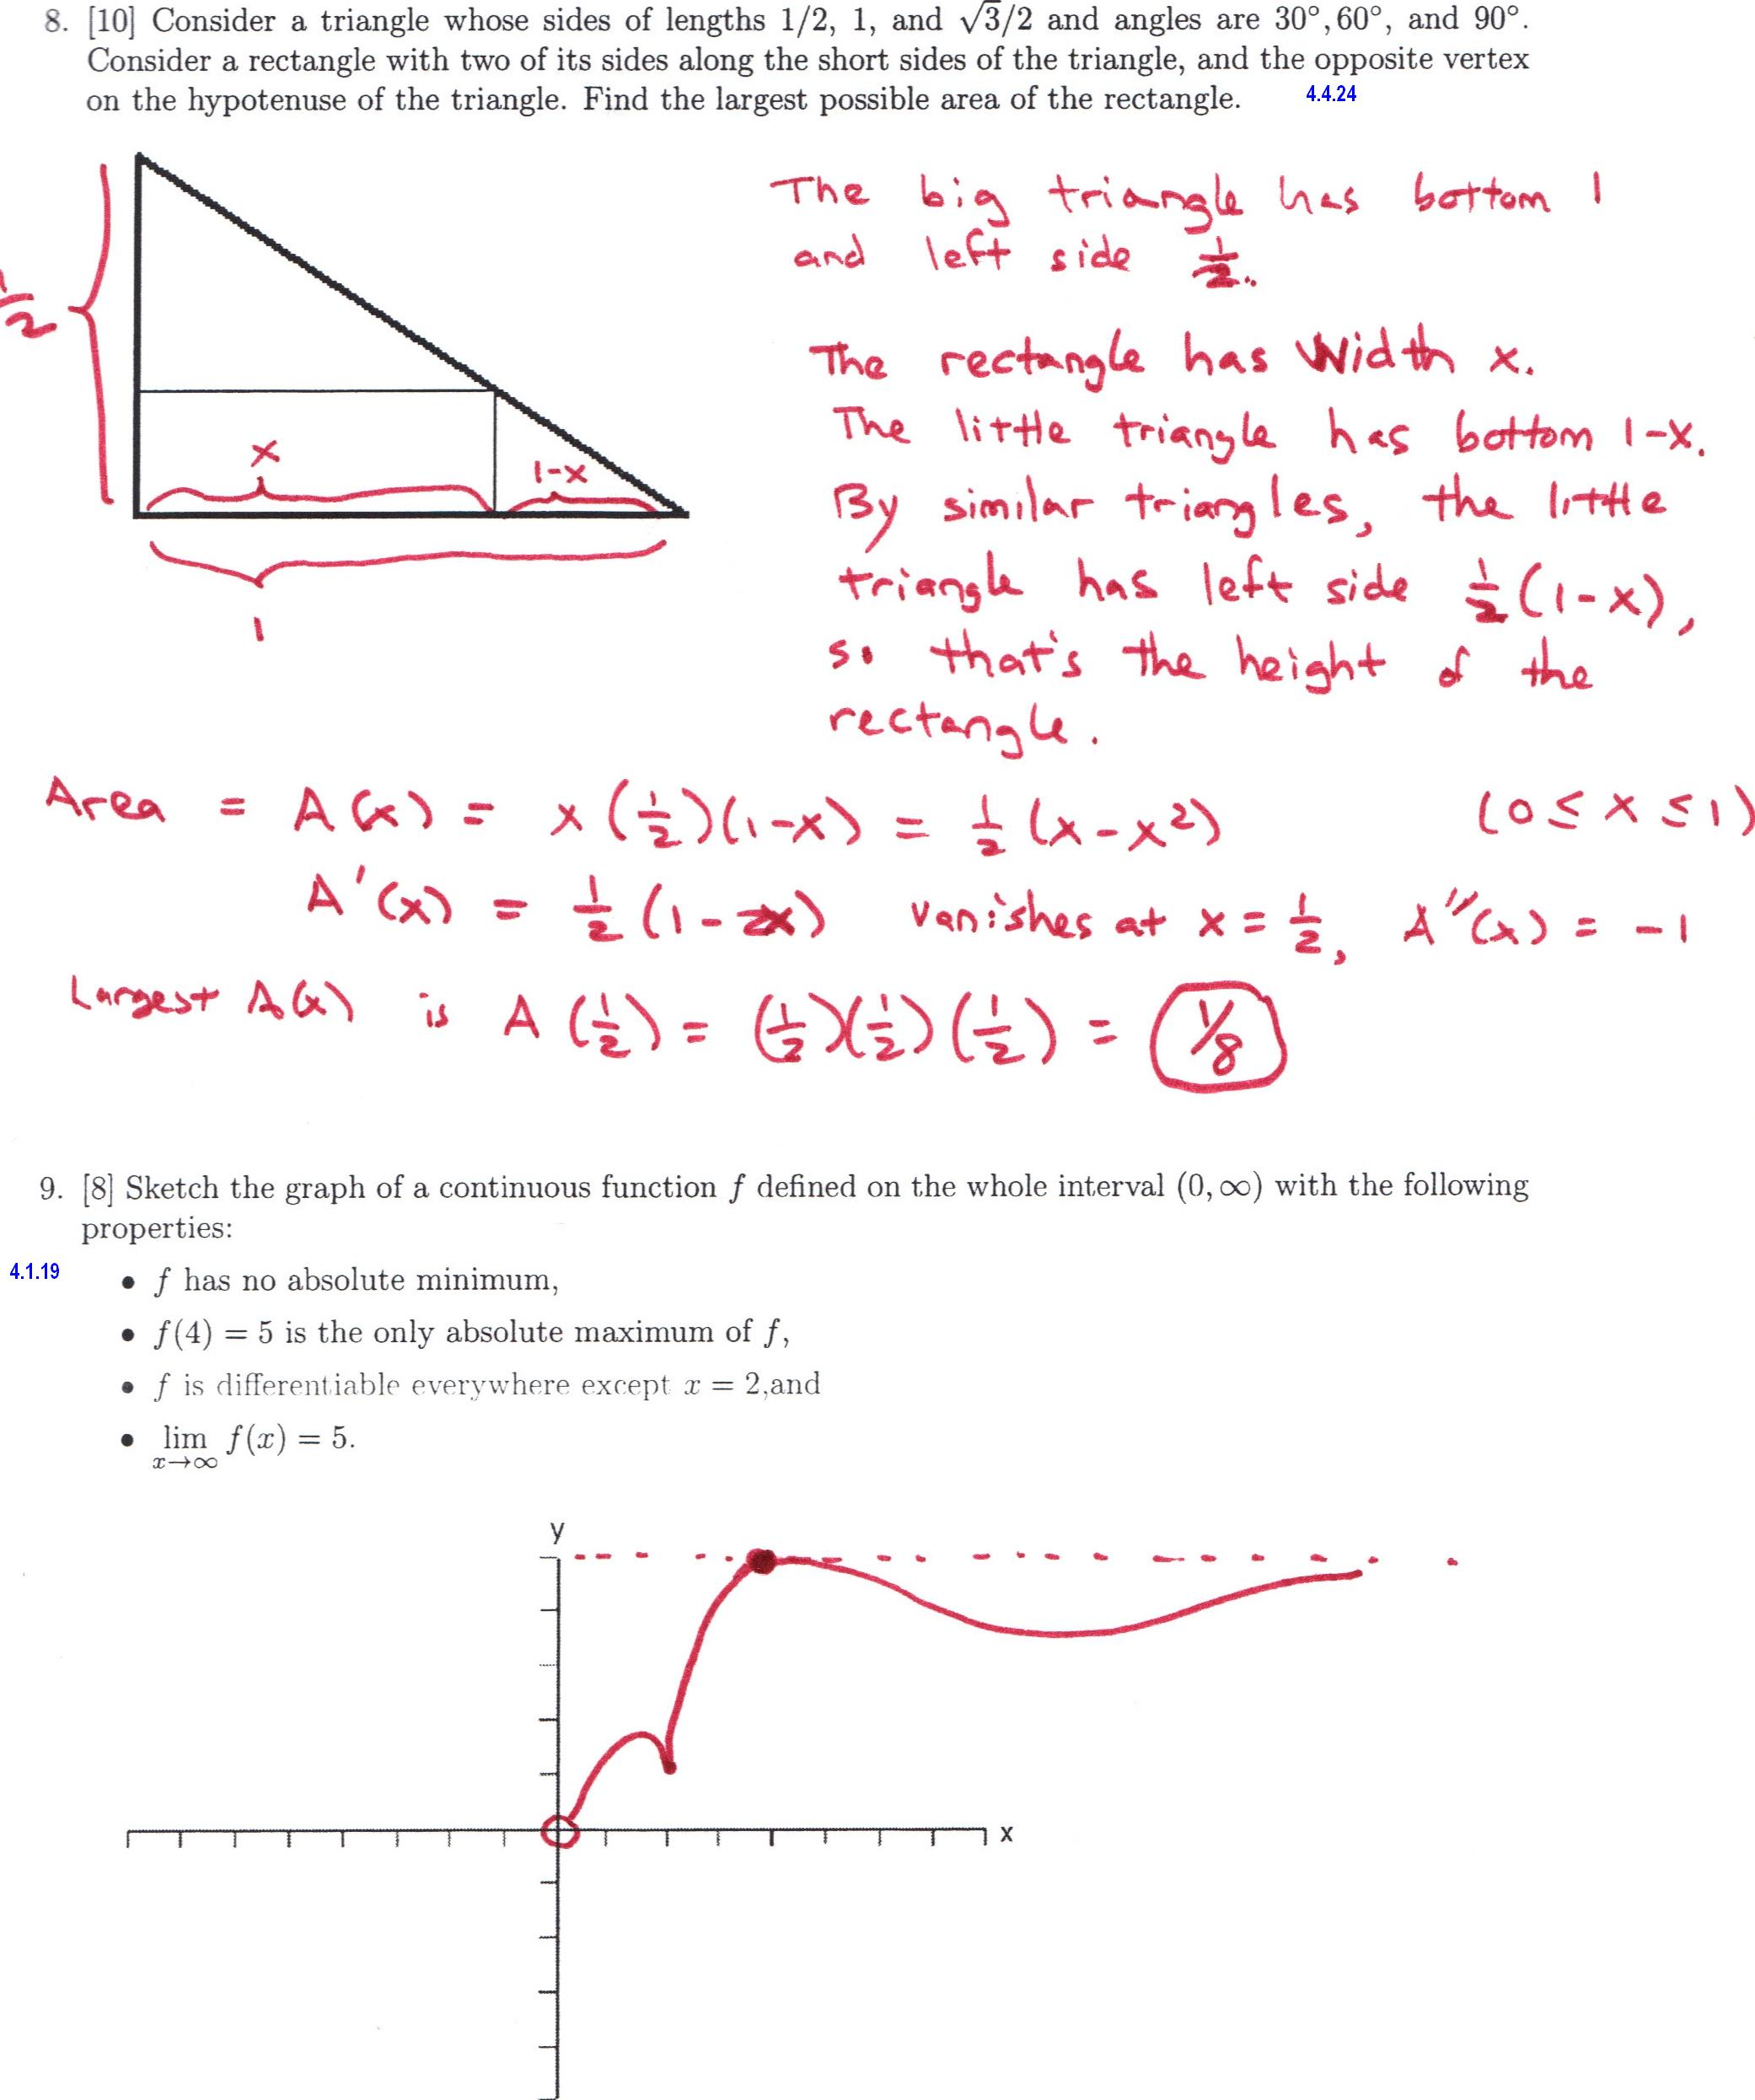 100 special right triangles worksheet 30 60 90 answers 15 special right triangles worksheet 30 60 90 answers dr schechter u0027s calculus classes spring 2011 robcynllc Image collections